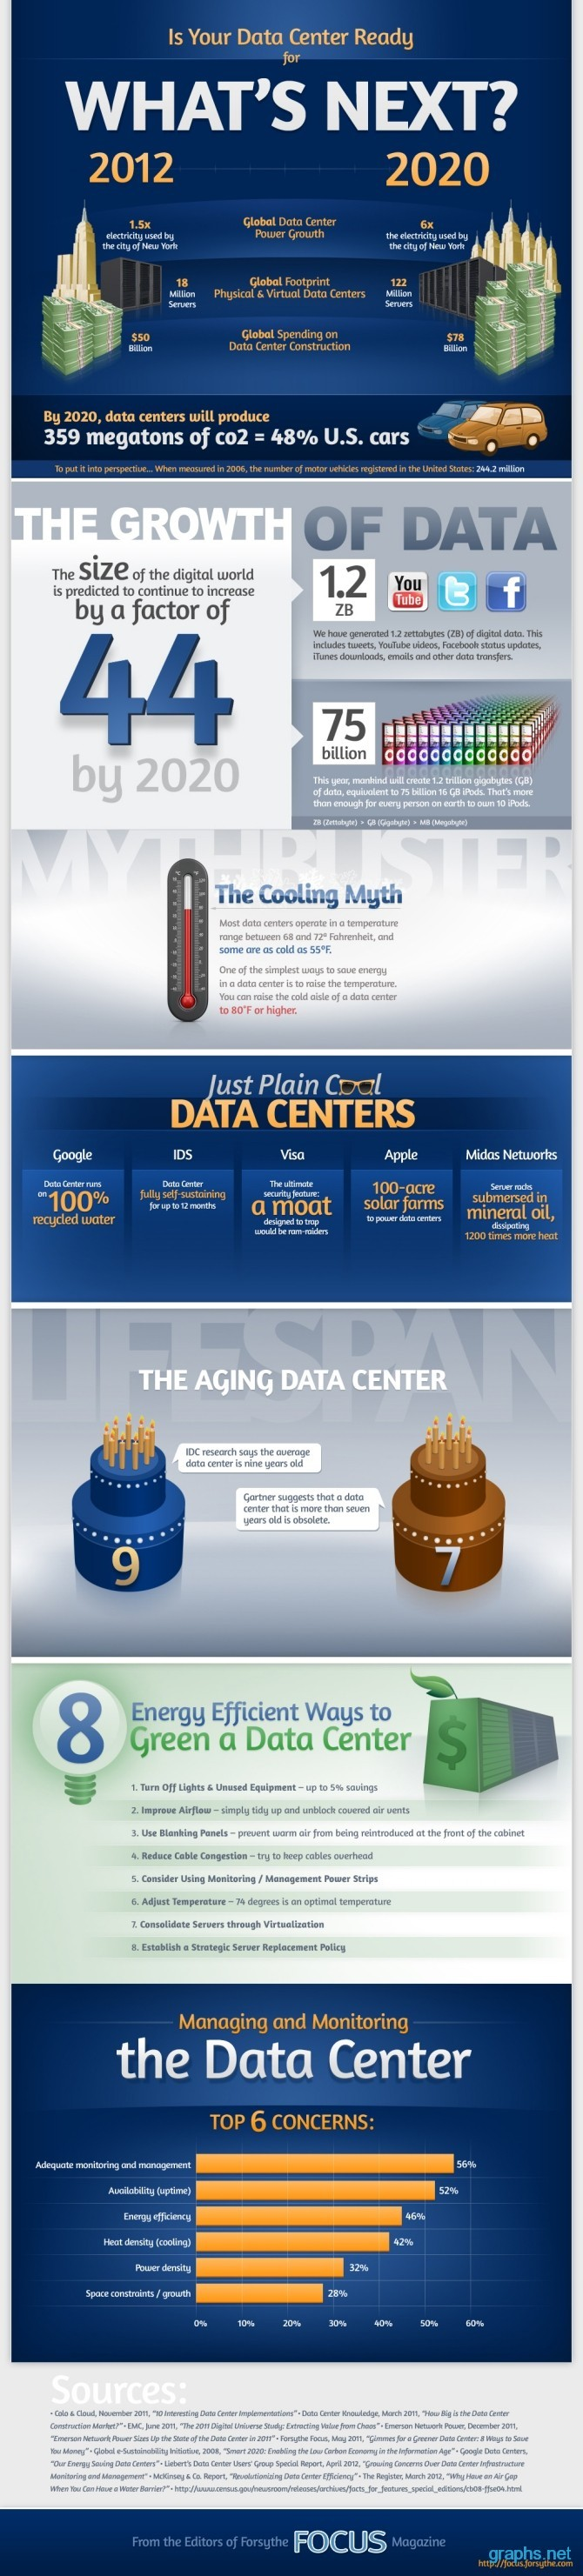 Future of Data Center